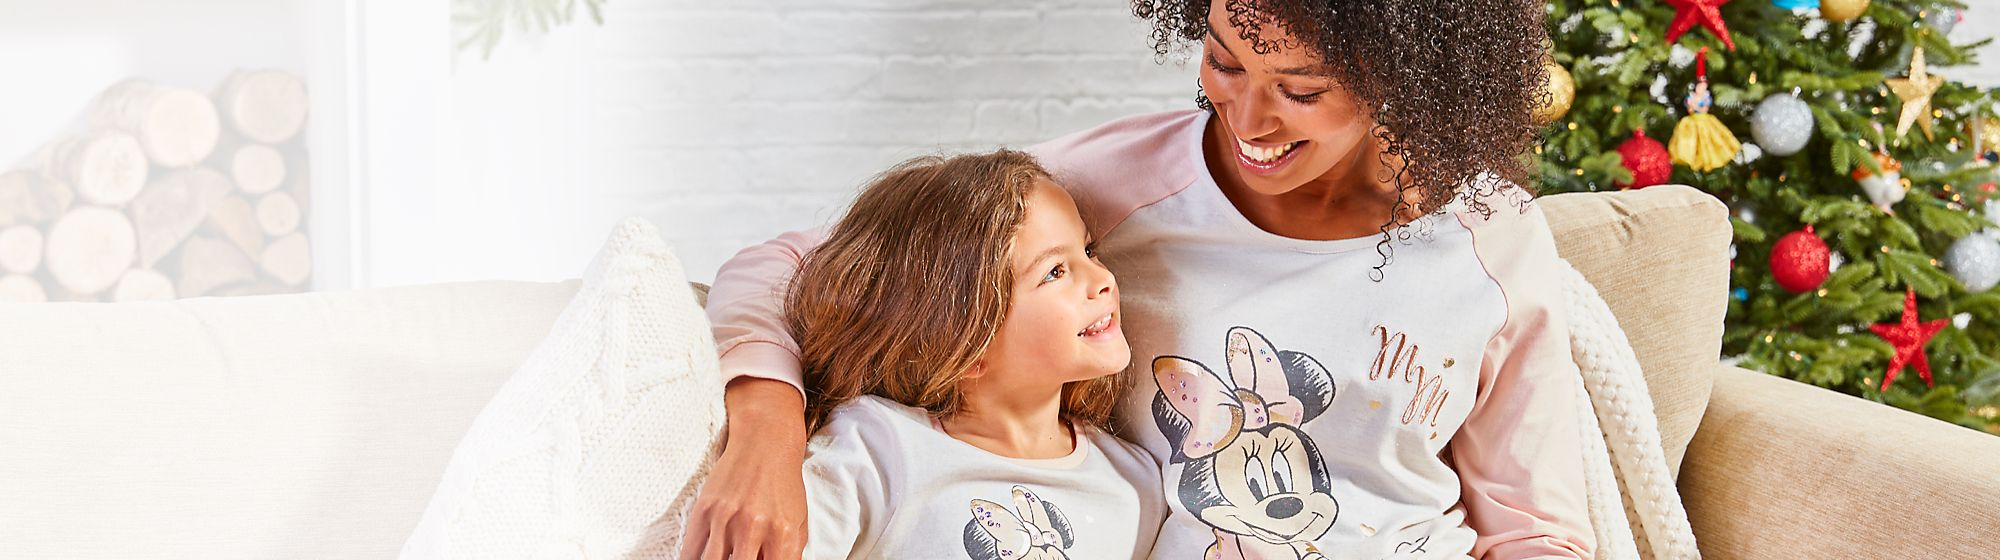 Sleep Shop Add a touch of Disney magic to bedtimes with our dreamy essentials. From cuddly soft toys and cosy fleece throws, to snuggly slippers and comfy pyjamas, we have everything you need from A to Zzzz. With something for ladies, men and little ones, you're sure to tick off your goodnight checklist. SHOP ALL